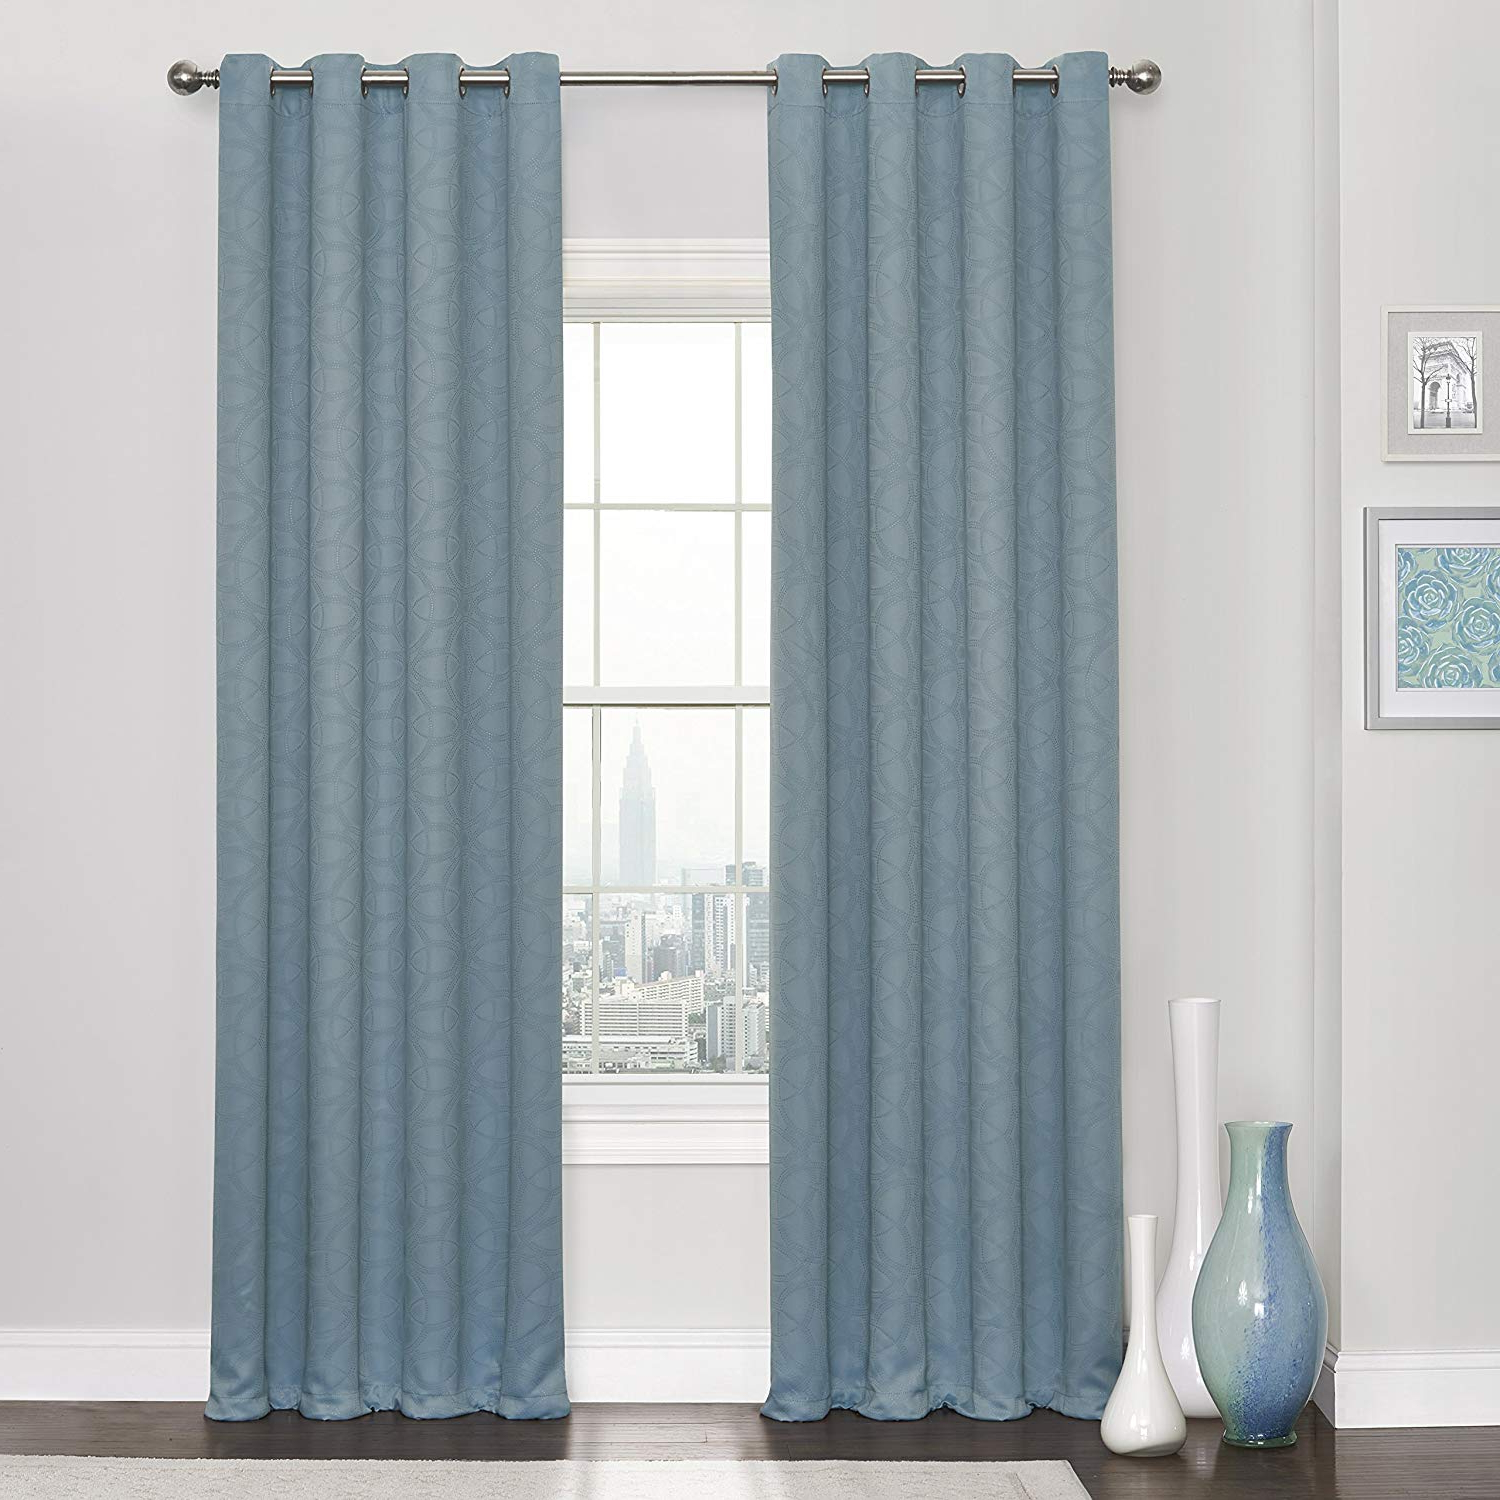 Popular Amazon: Eclipse 16911052095spa Thermaweave Blackout Pertaining To Eclipse Trevi Blackout Grommet Window Curtain Panels (View 15 of 20)